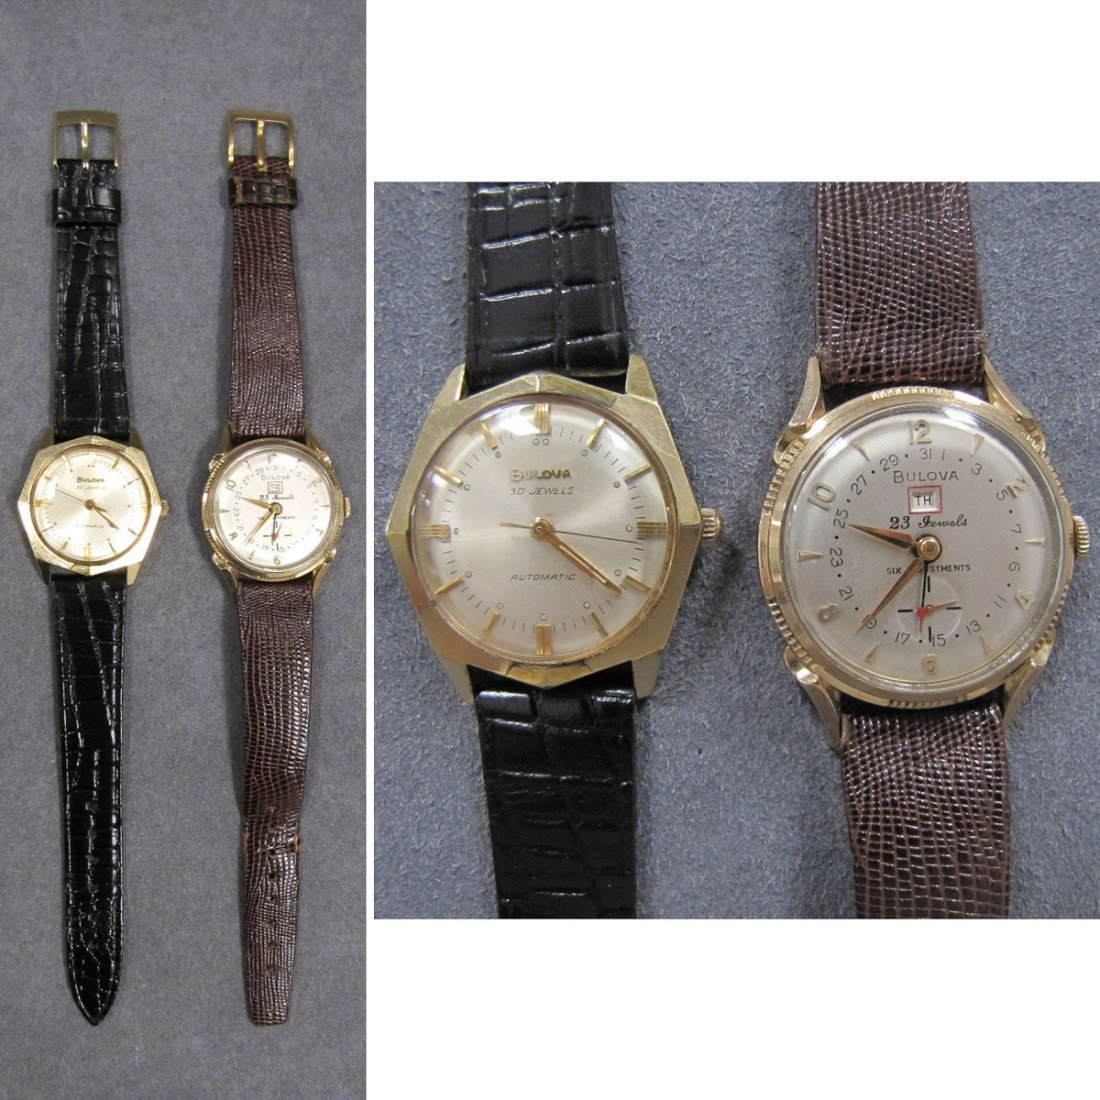 13: LOT (2) VINTAGE BULOVA GOLD FILLED WRISTWATCHES